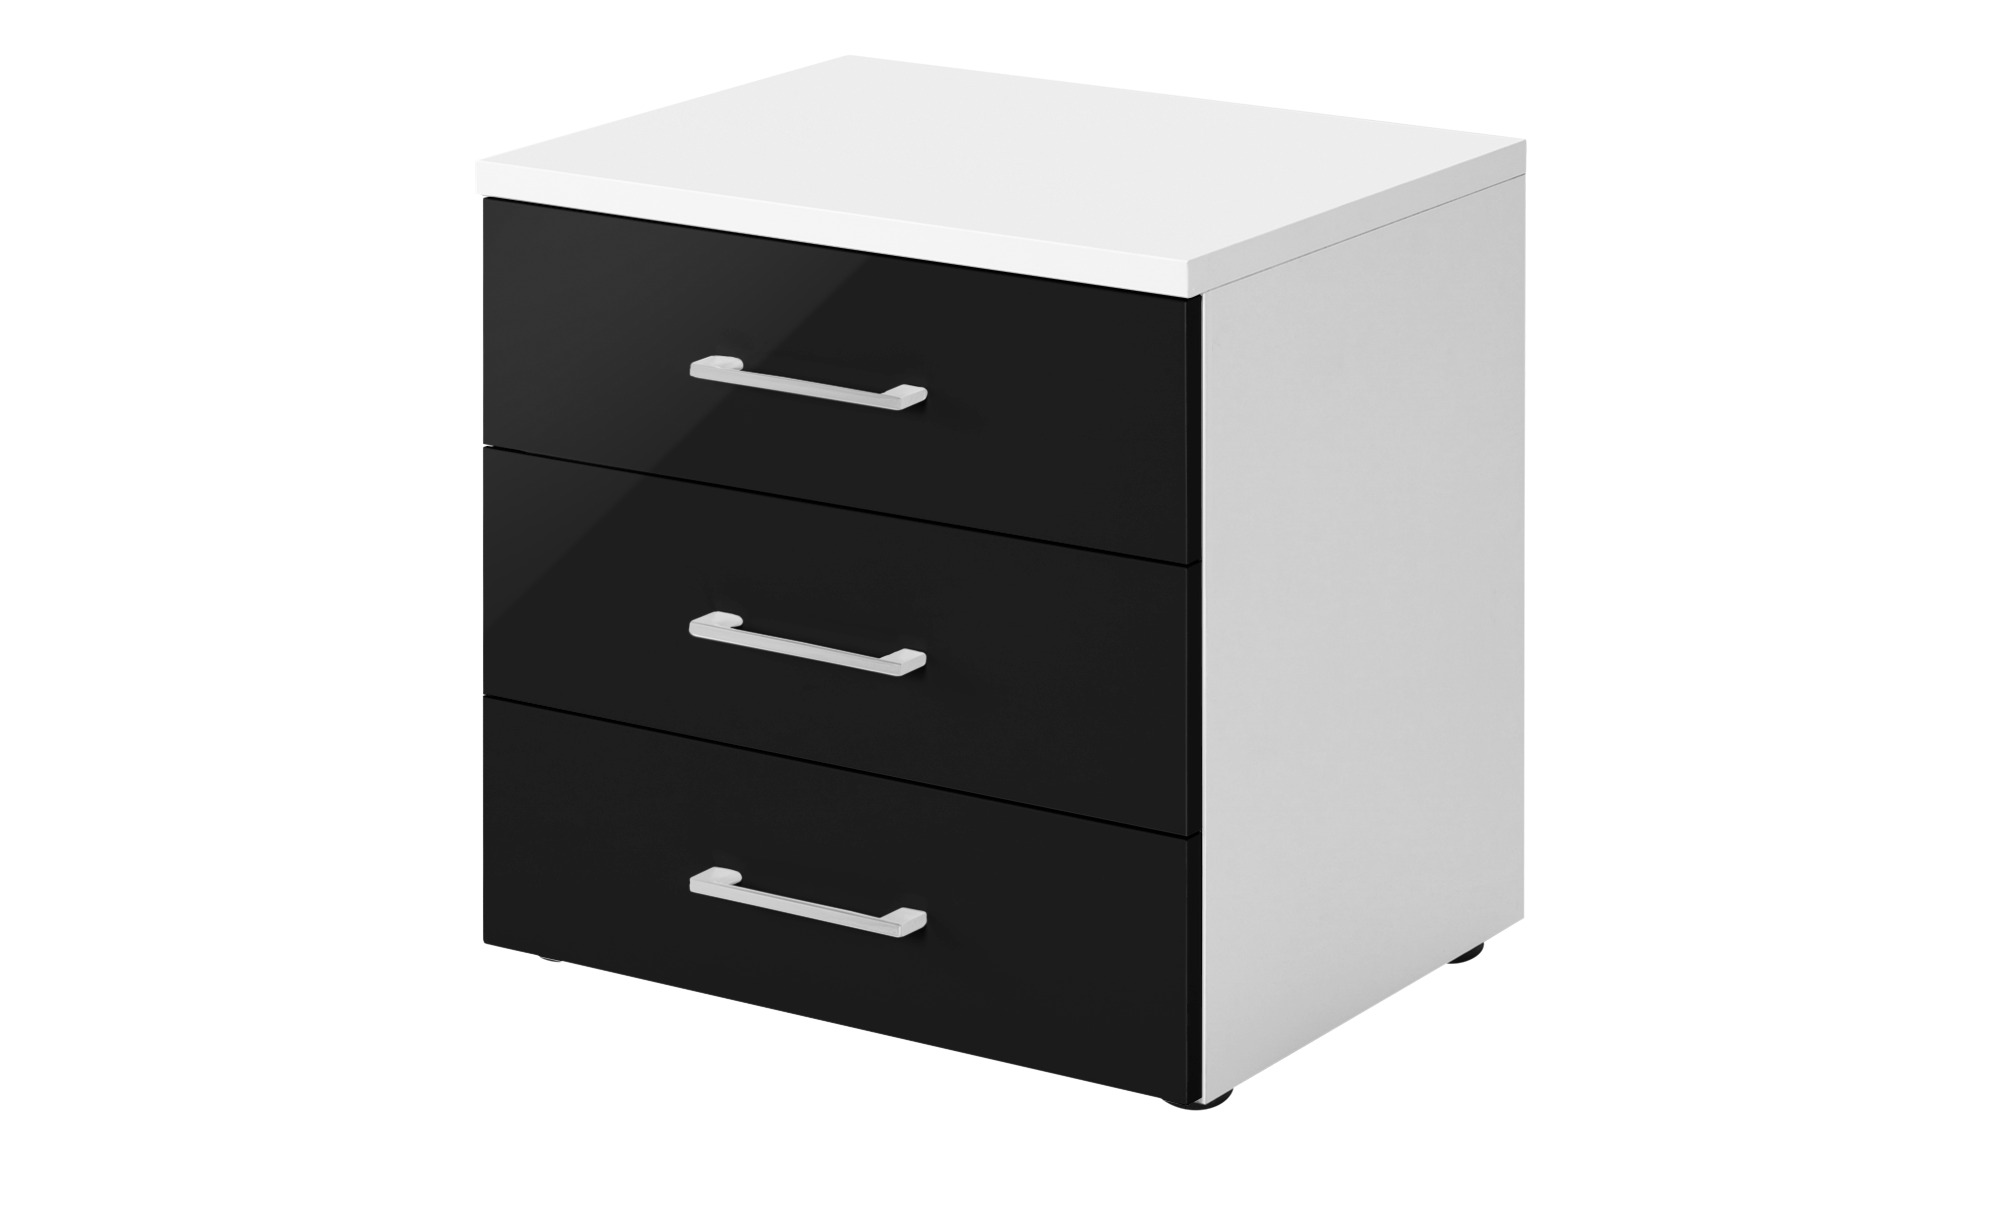 nachtkommode colors breite 50 cm h he 52 cm schwarz online kaufen bei woonio. Black Bedroom Furniture Sets. Home Design Ideas